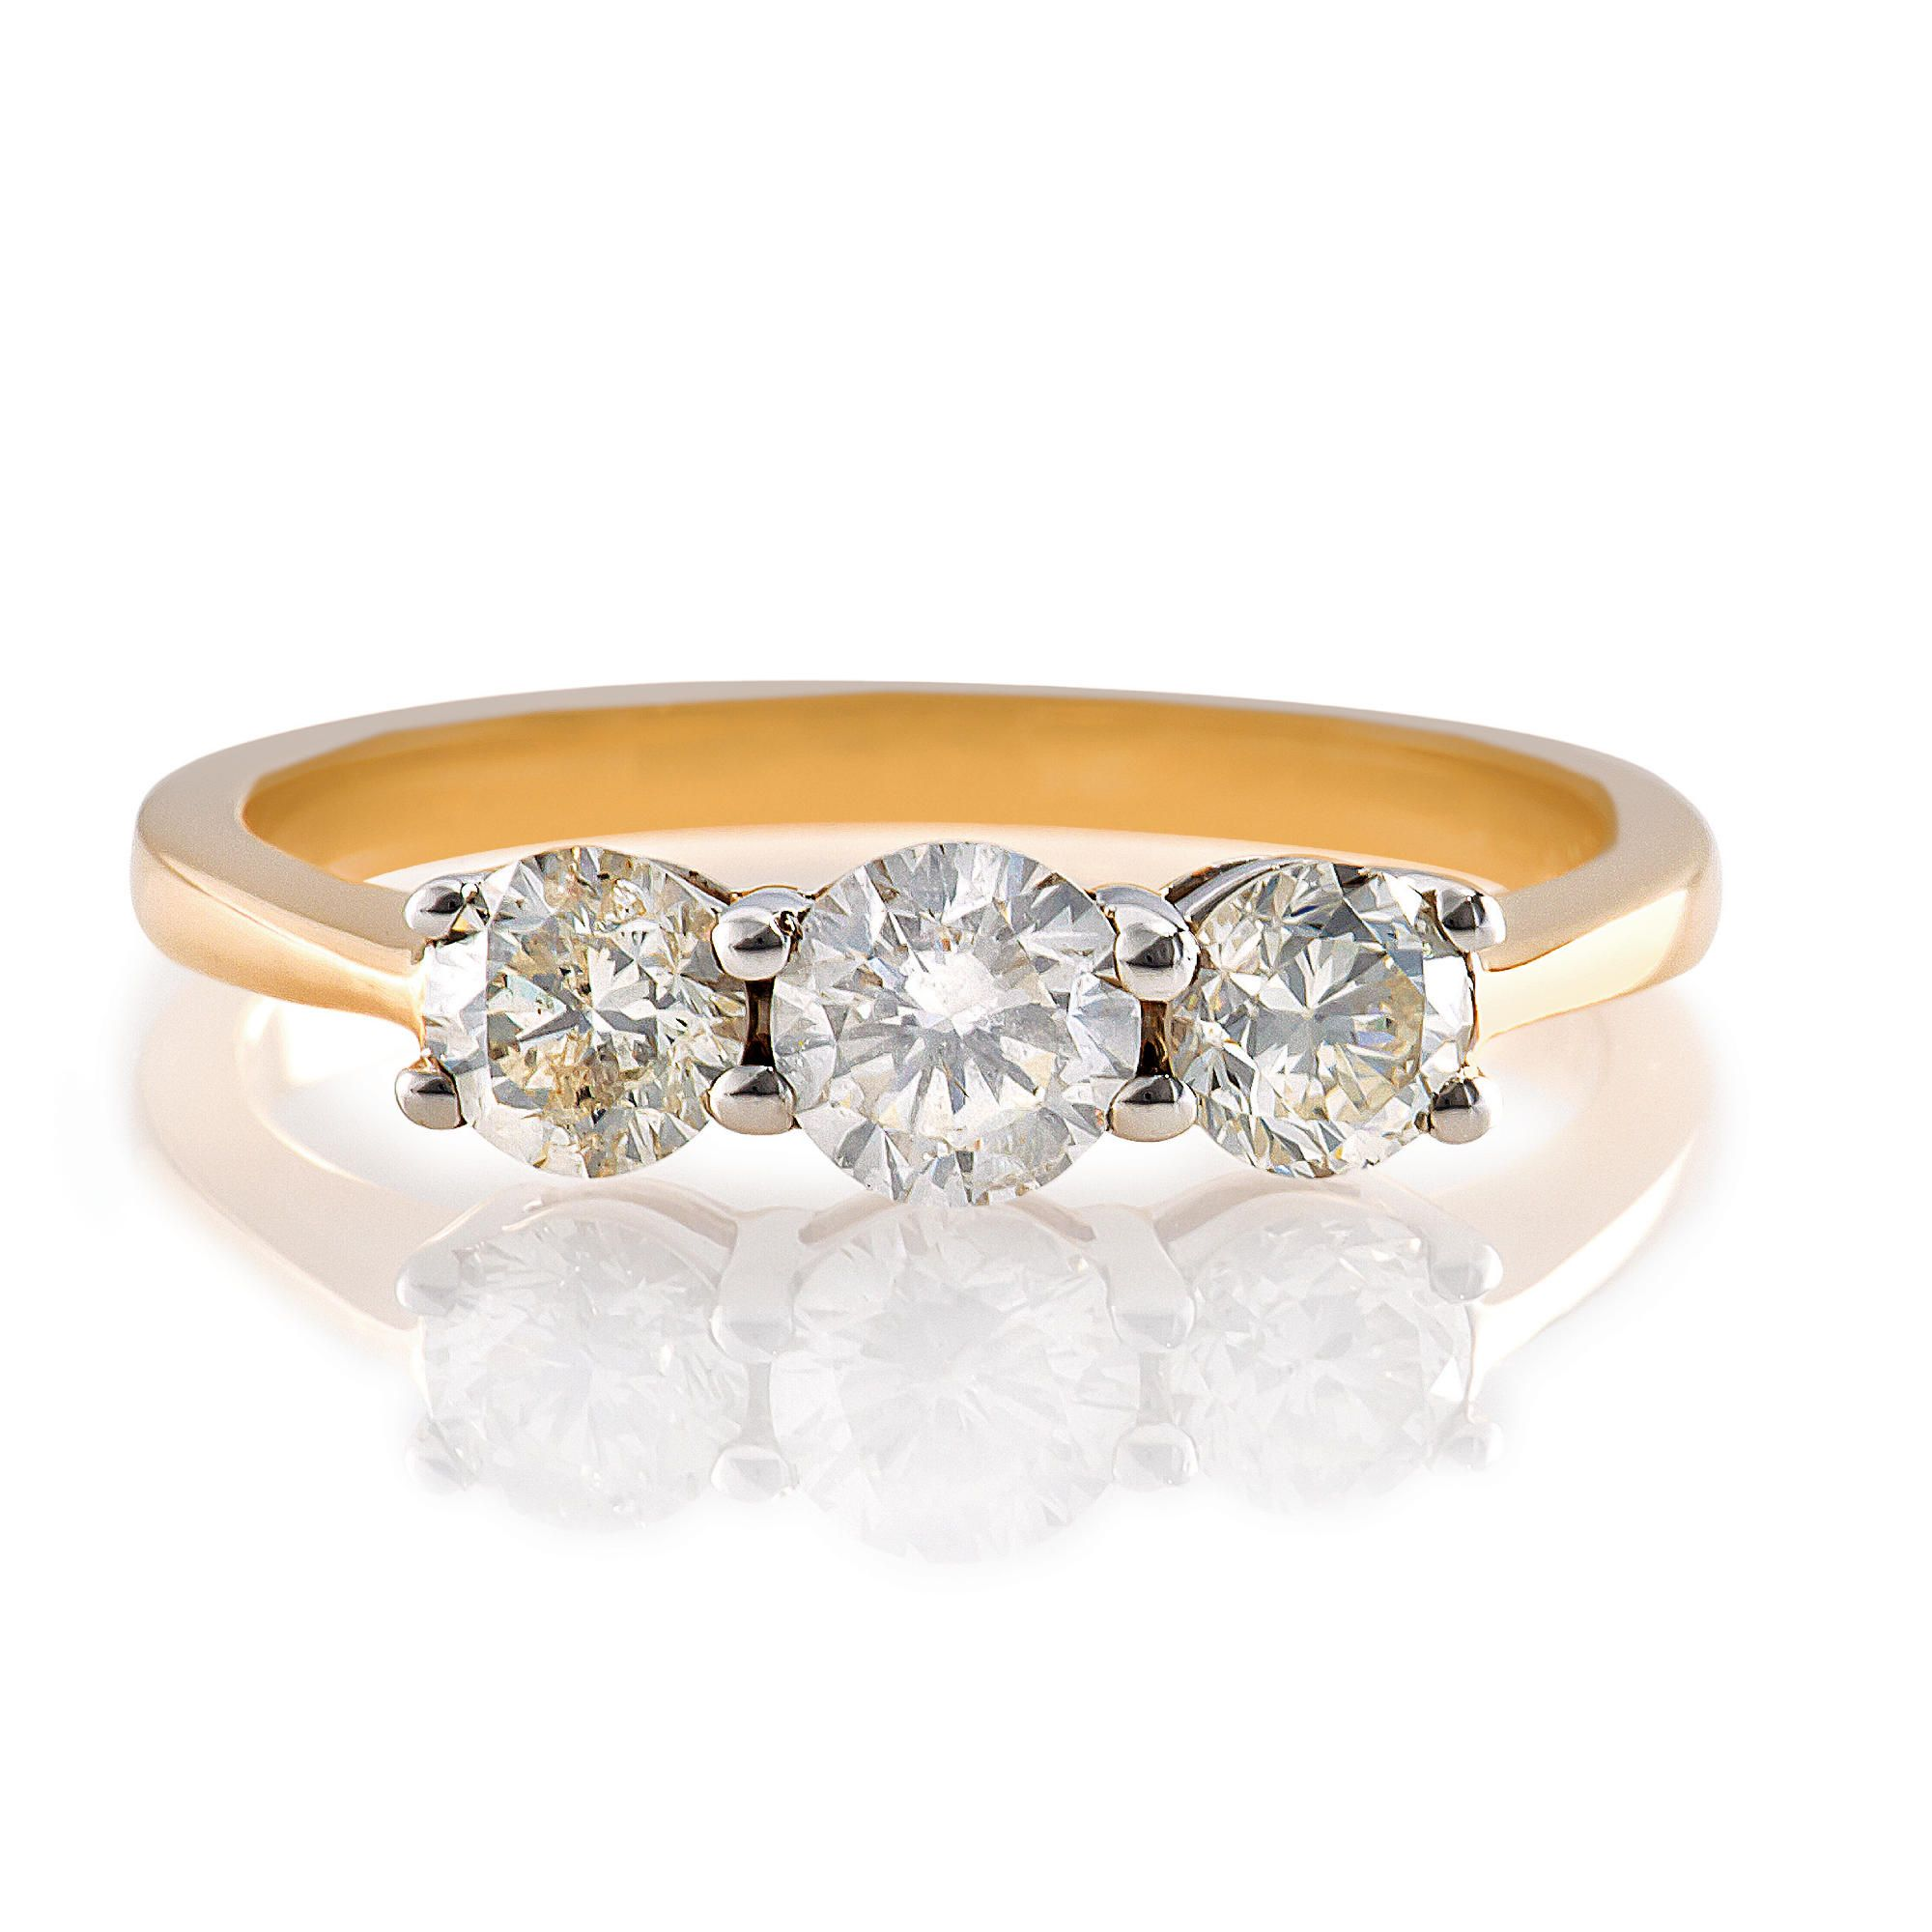 9ct Gold 1ct 3 Stone Diamond Ring, P at Tesco Direct